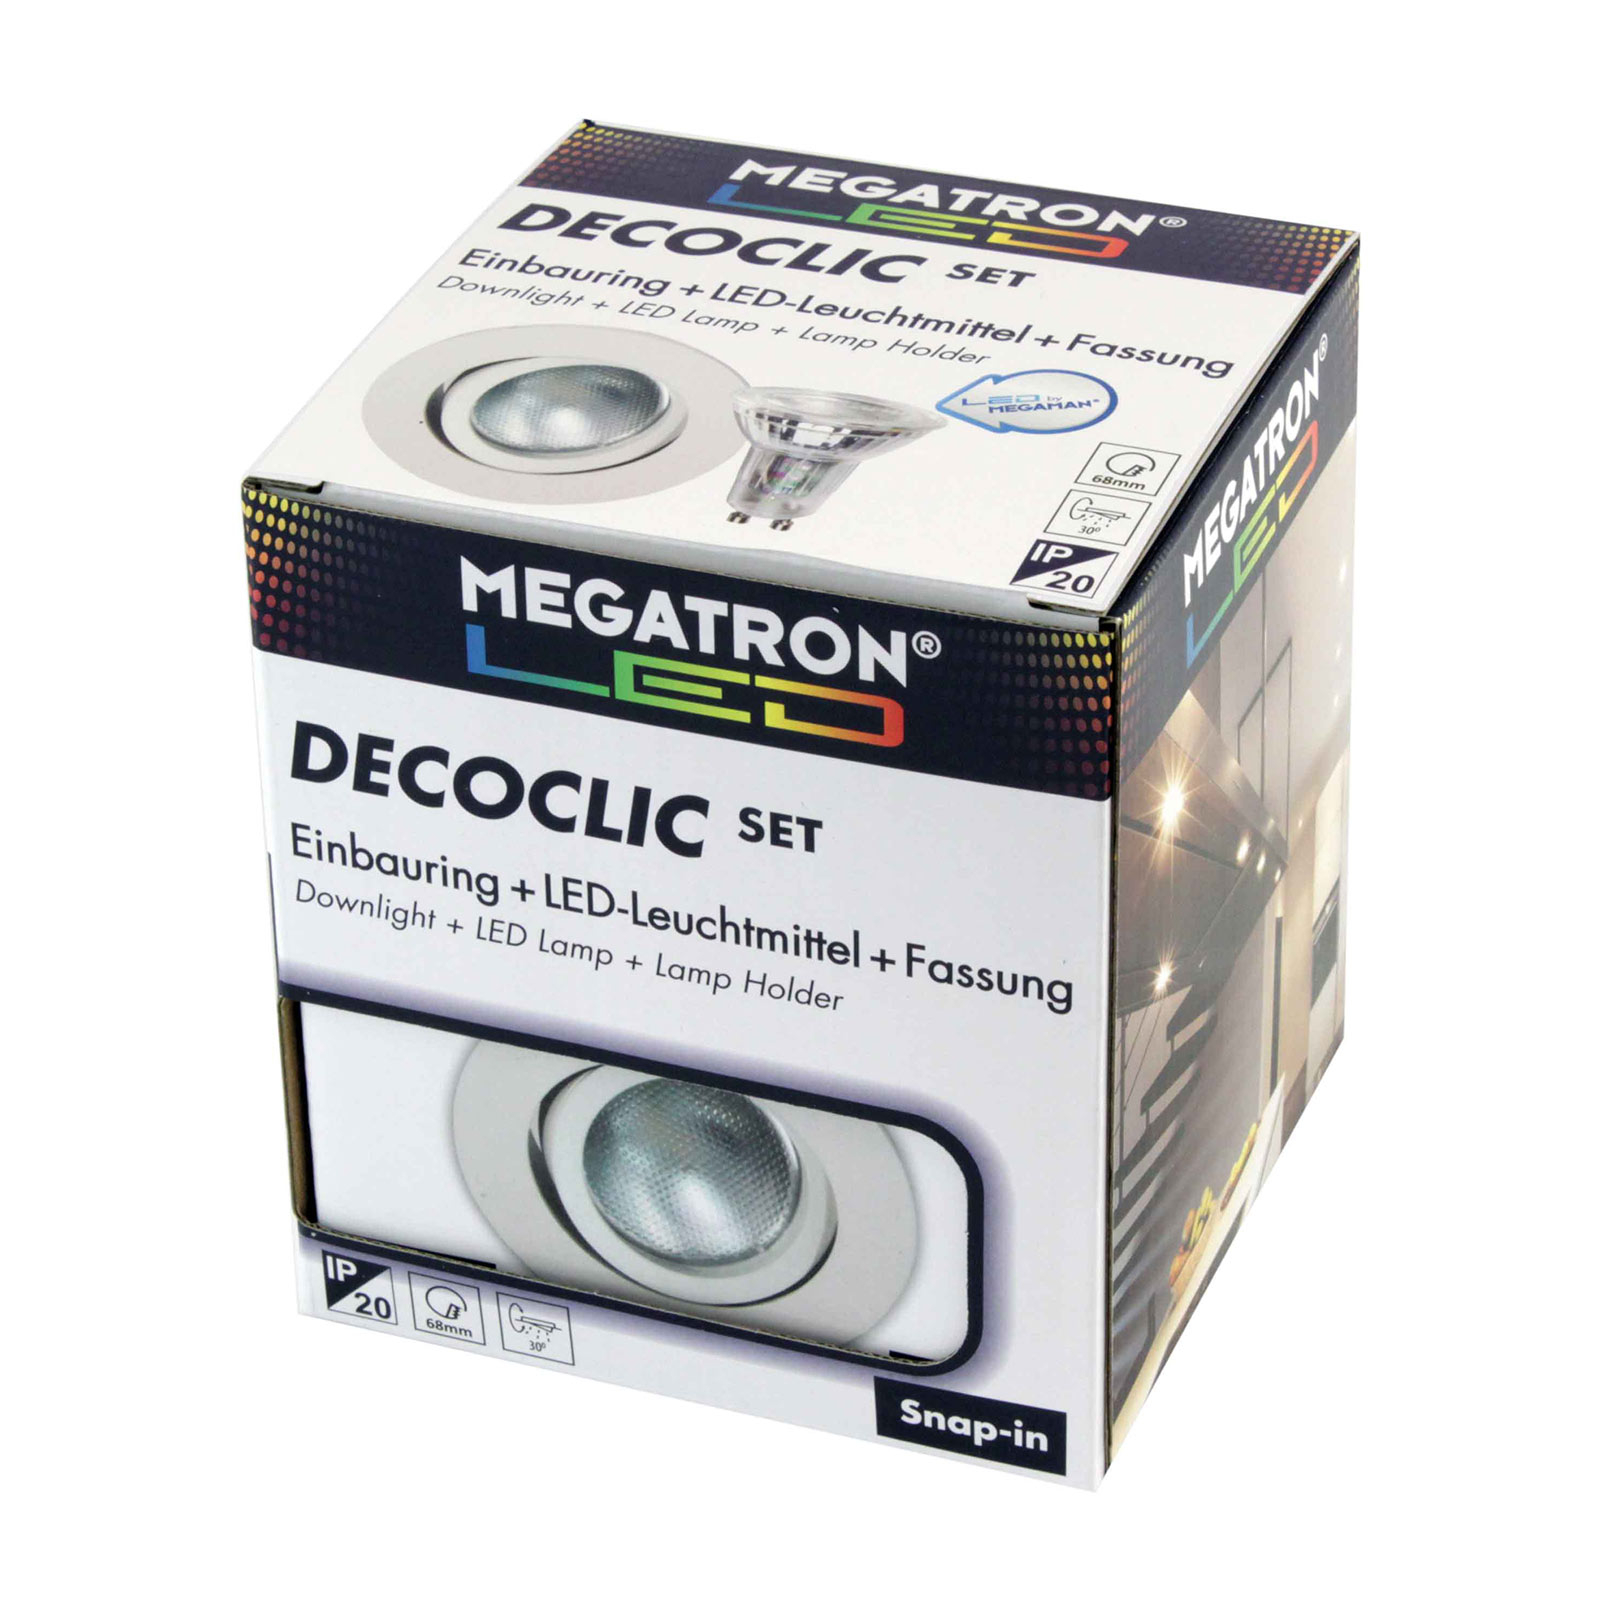 Spot encastré LED Decoclic lot GU10 4,5 W, blanc